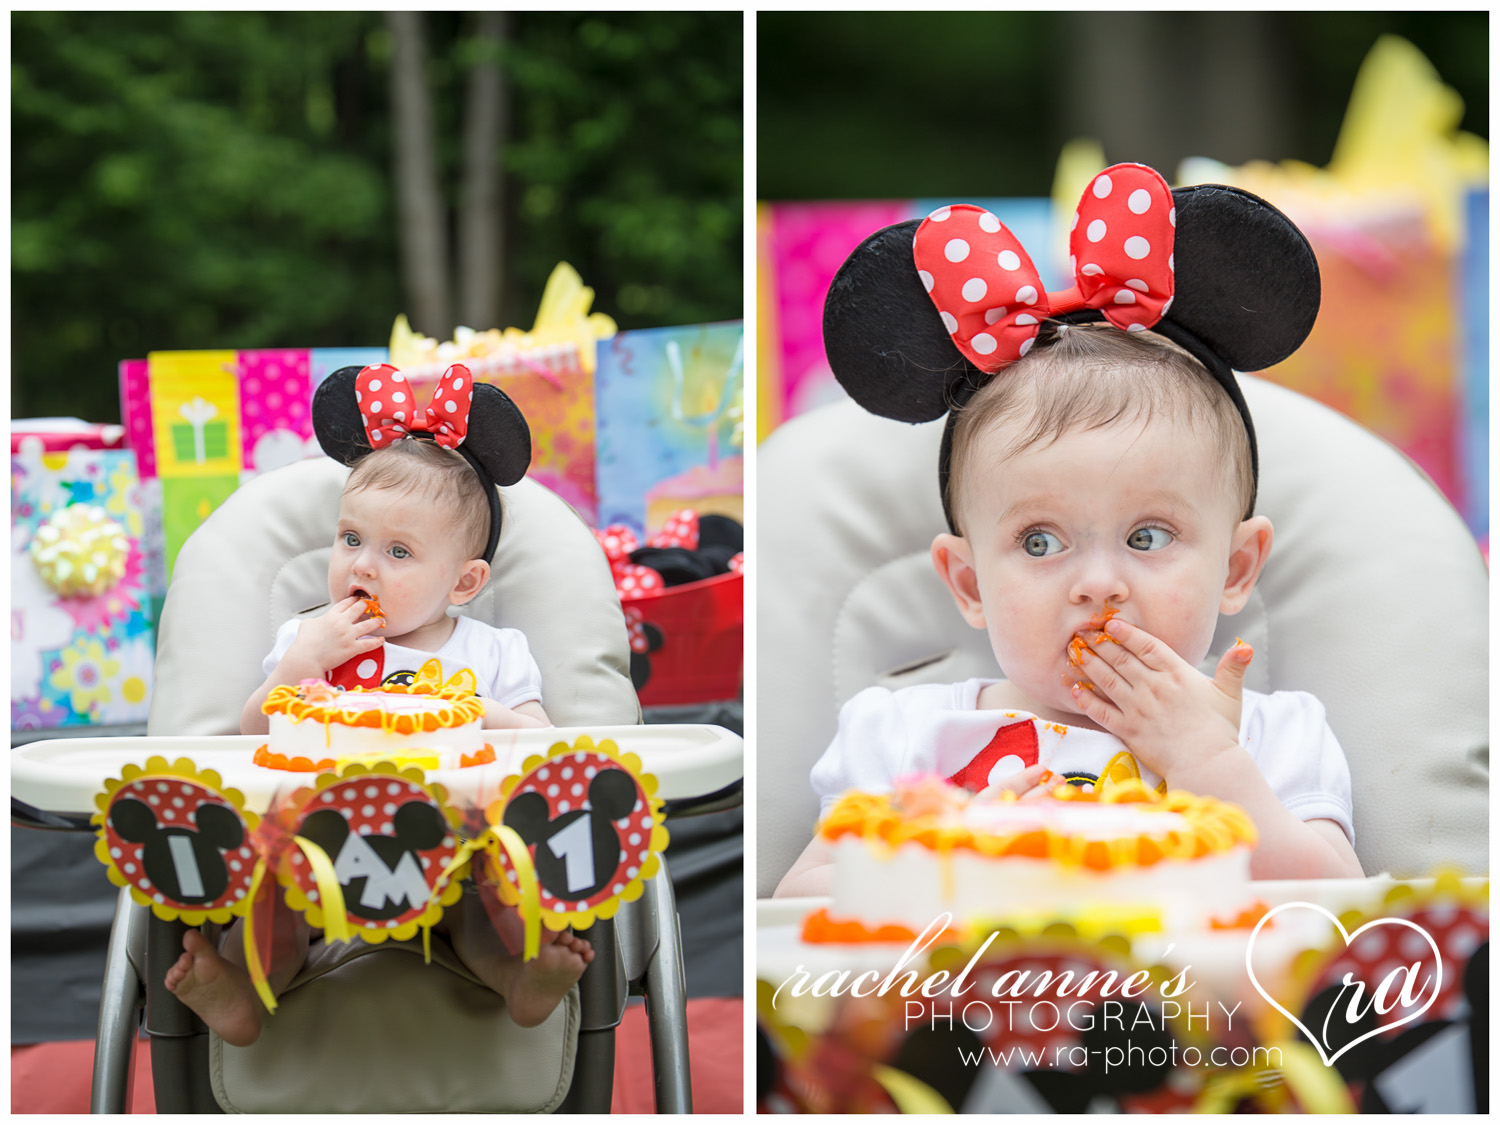 030-CESA-FIRST-BIRTHDAY-PARTY-PHOTOGRAPHY.jpg